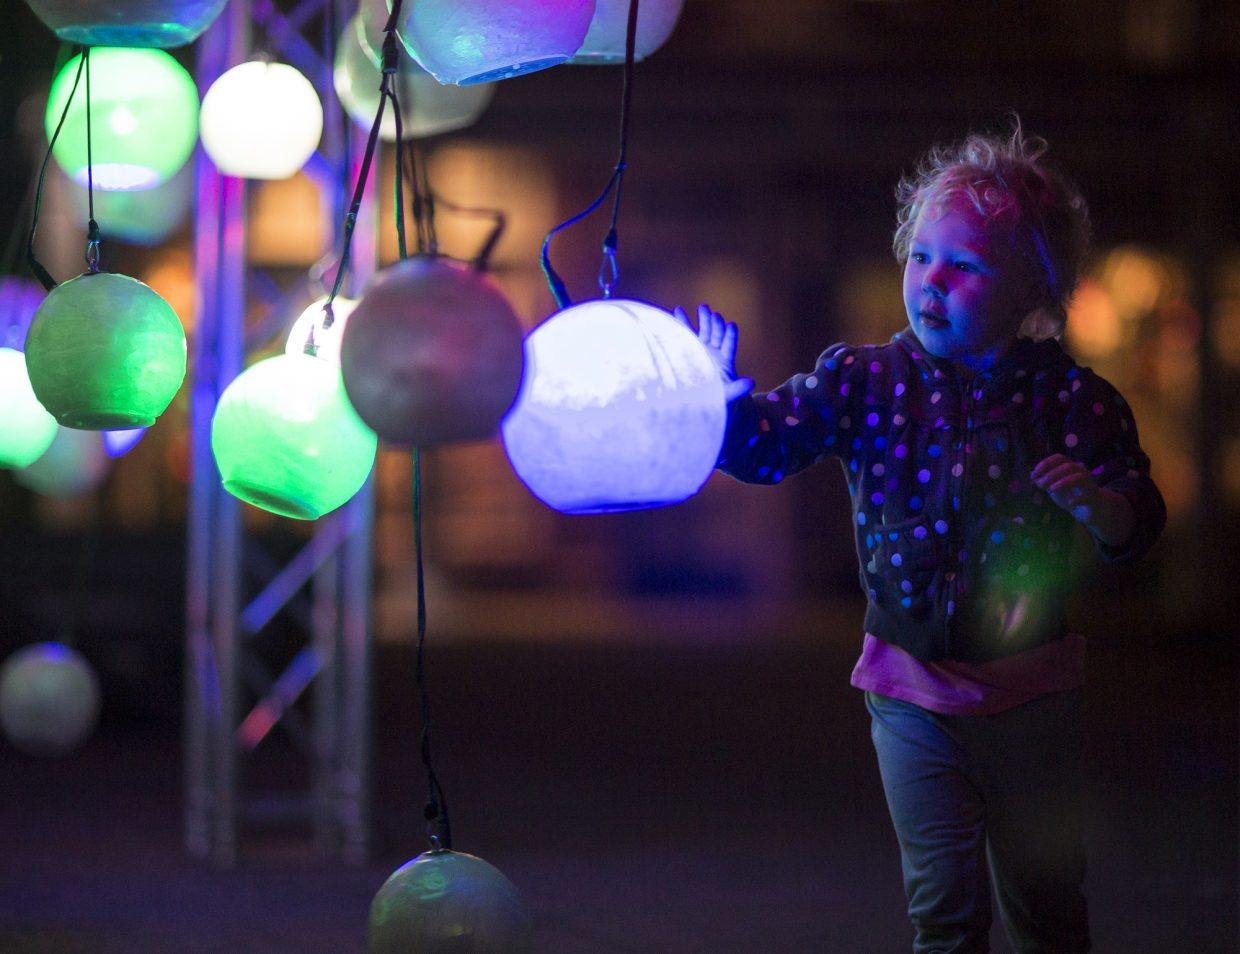 Oaklee Emore, 3, interacts with a suspended globe during the BreckCreate's WAVE festival at the Blue River Plaza Thursday June 1, 2017, in downtown Breckenridge.